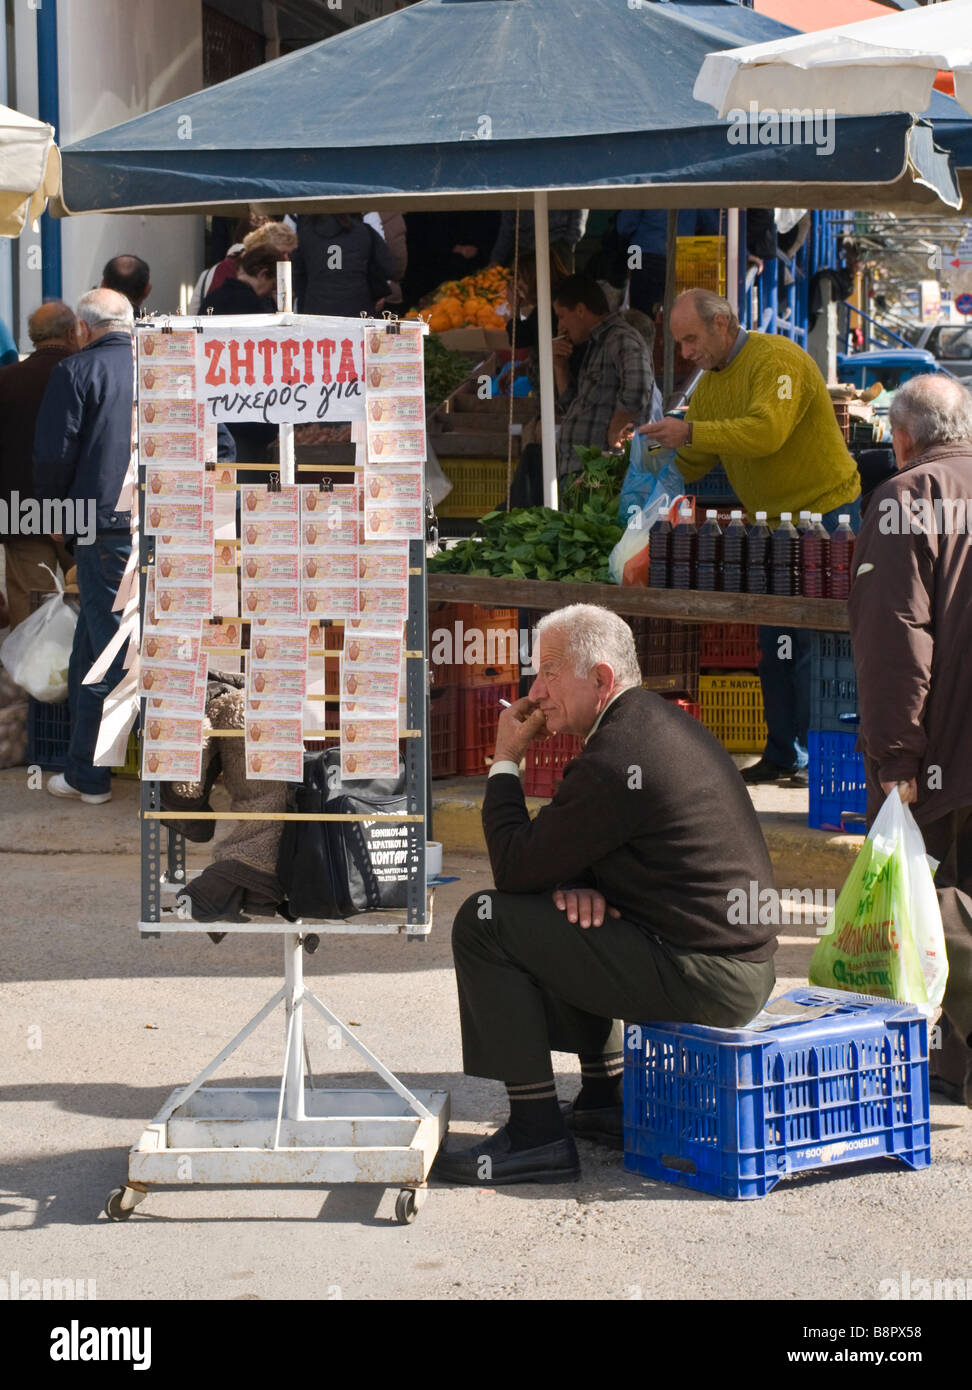 Selling lottery tickets outside the covered market in Kalamata Messinia Southern Peloponnese Greece - Stock Image